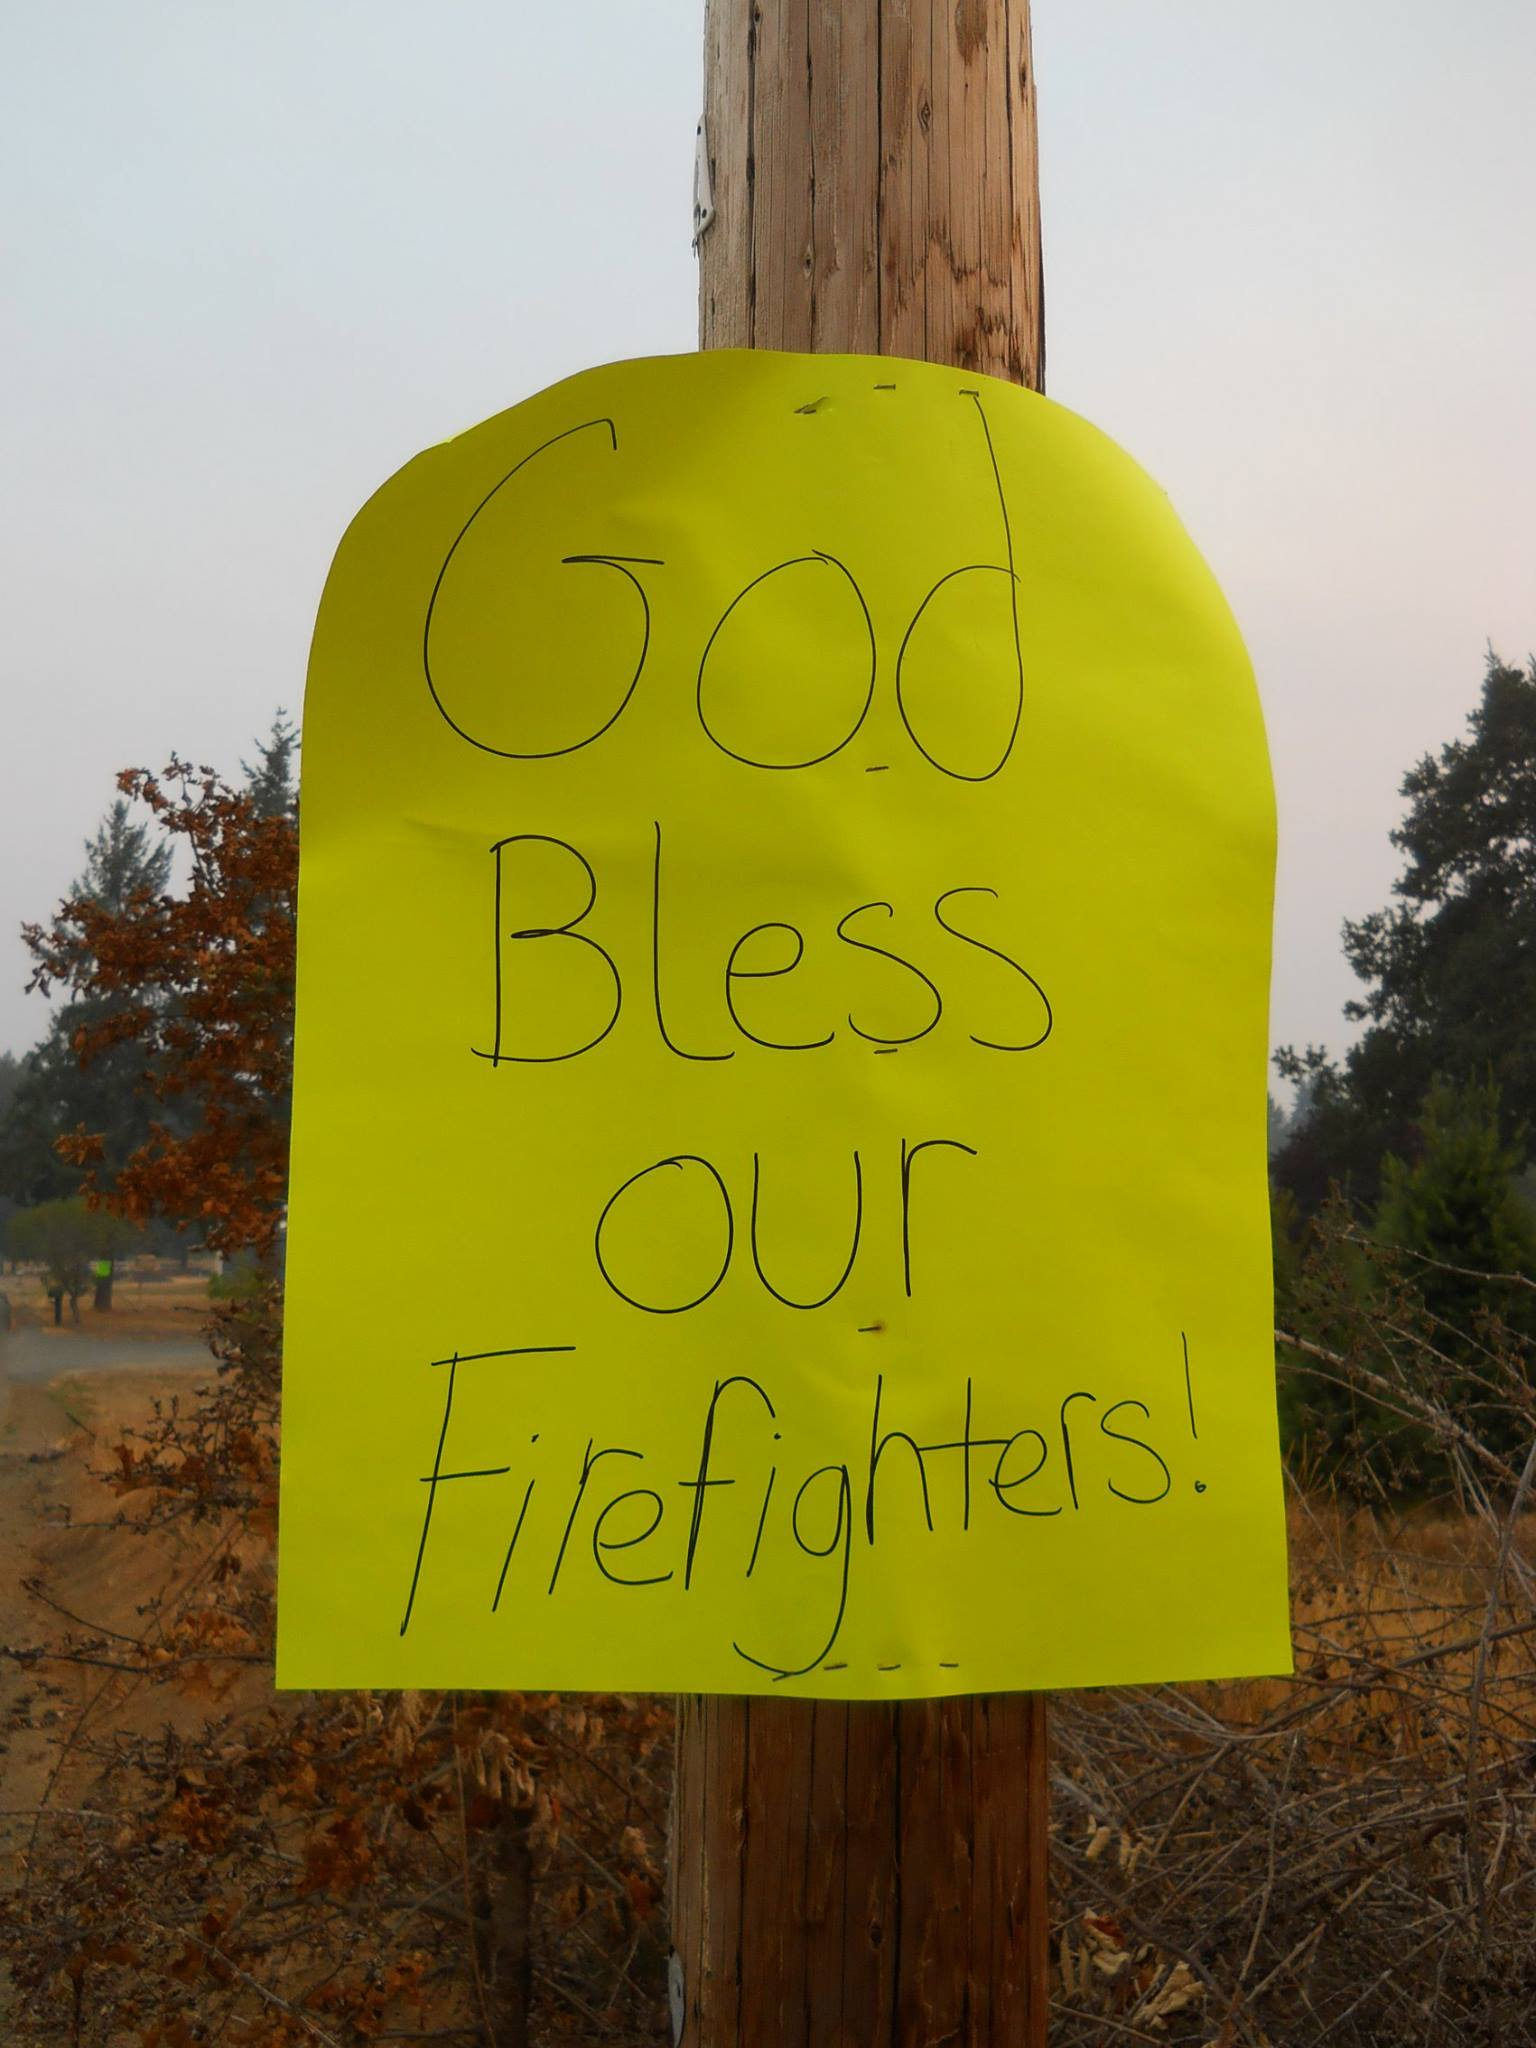 Oregonians have offered signs of support for the firefighters battling blazes in the Beaver State. Fire managers saw the crews see the signs - and that the messages help boost morale. (Photos via InciWeb and fire information websites)